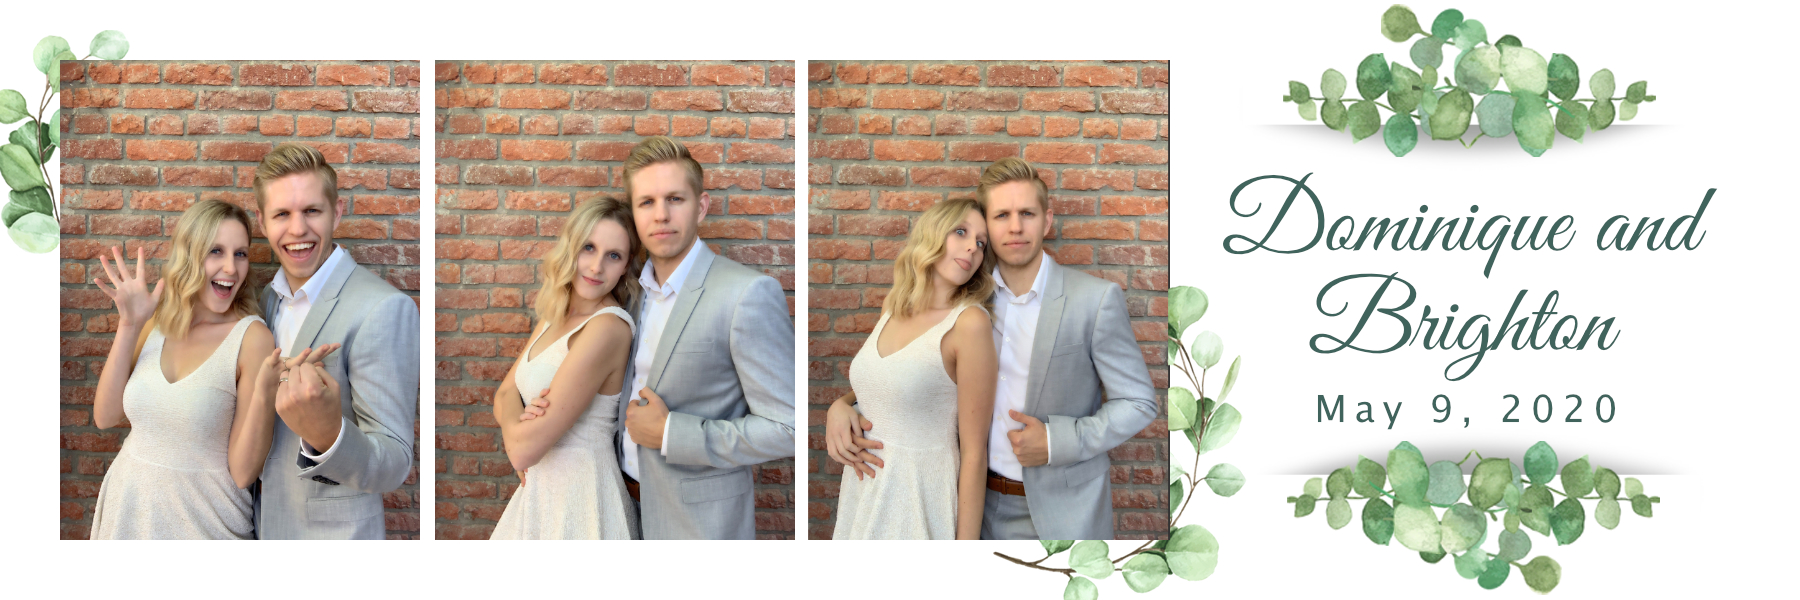 wedding print overlay 3